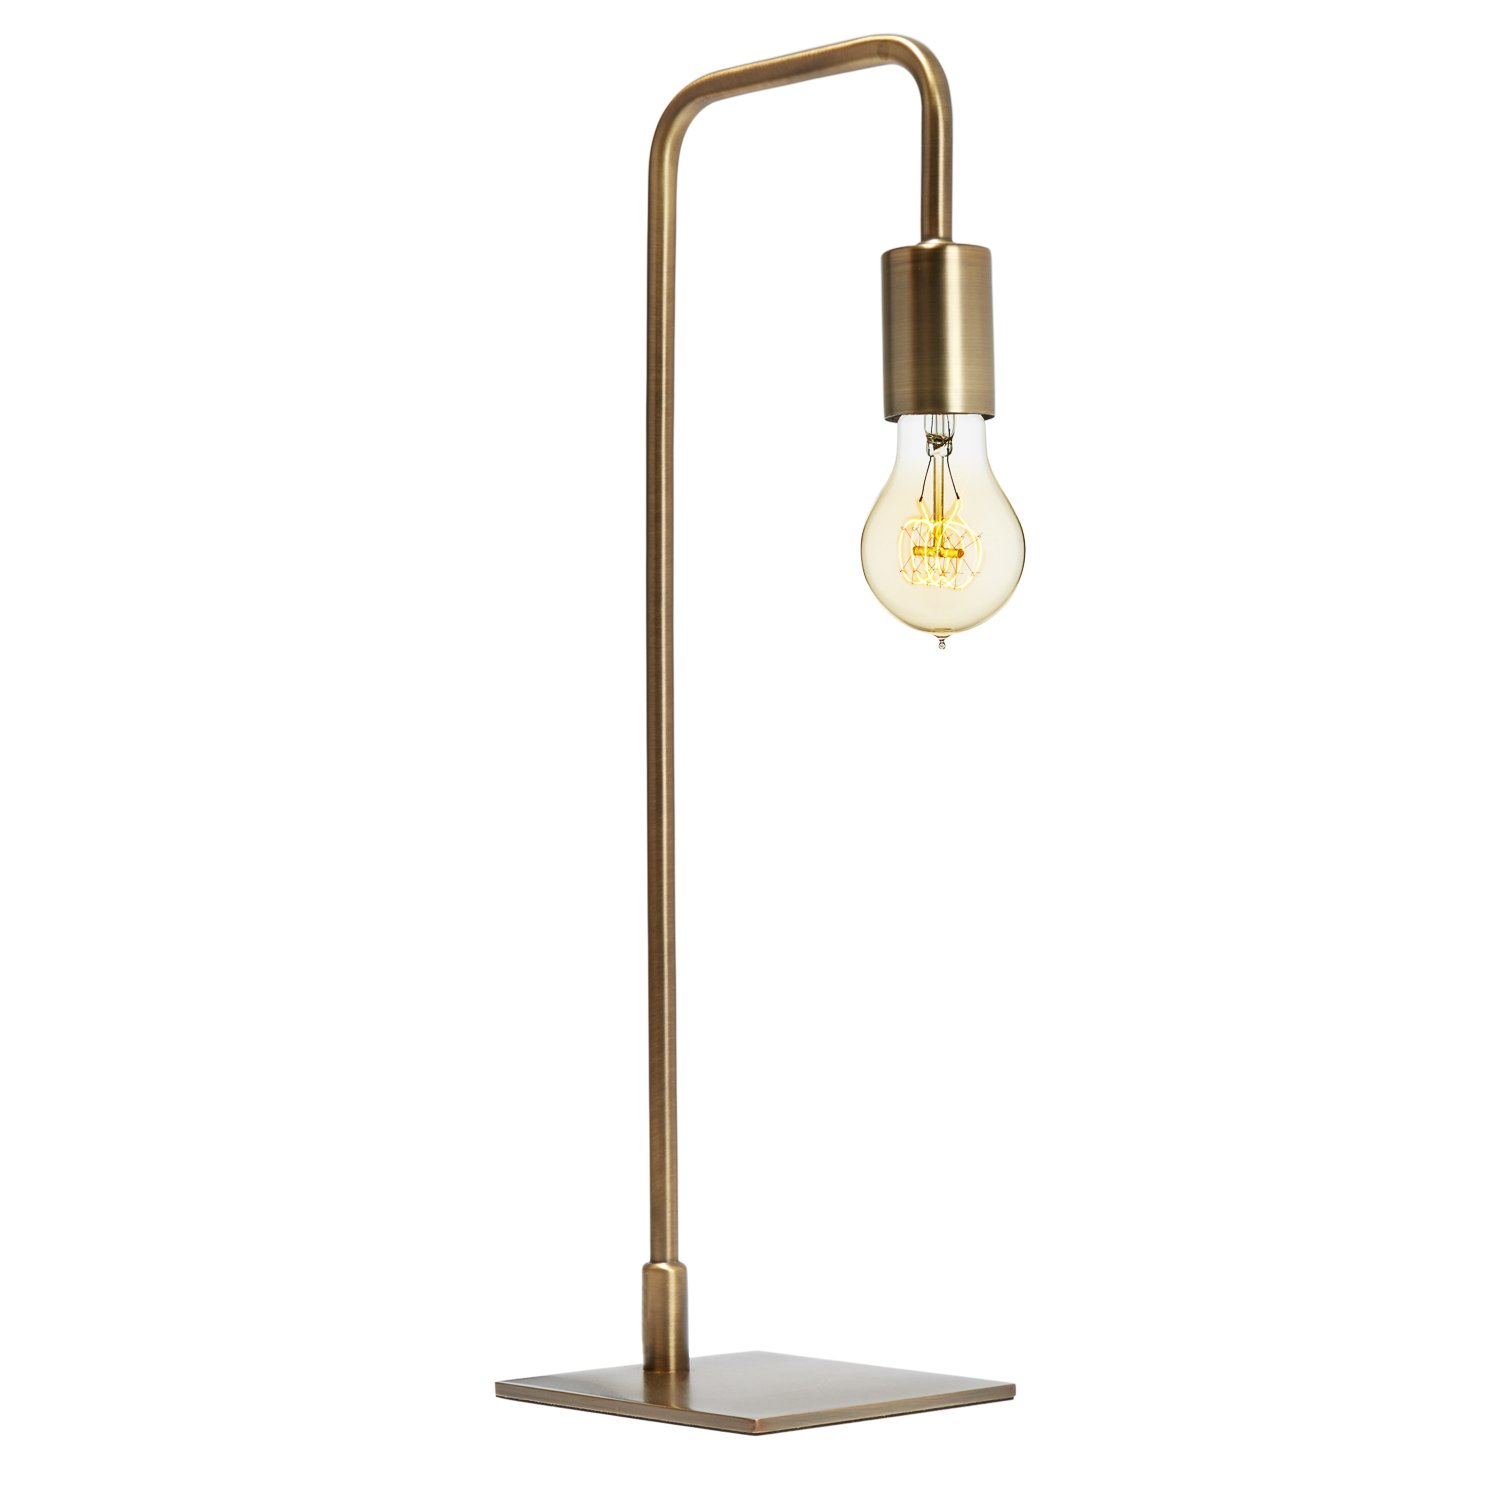 Bronze Modern Table Lamp - Bedside Reading Light, Dimmable, Plugin, Metal, Hoyt Collection by Brooklyn Bulb Co, ETL Listed …